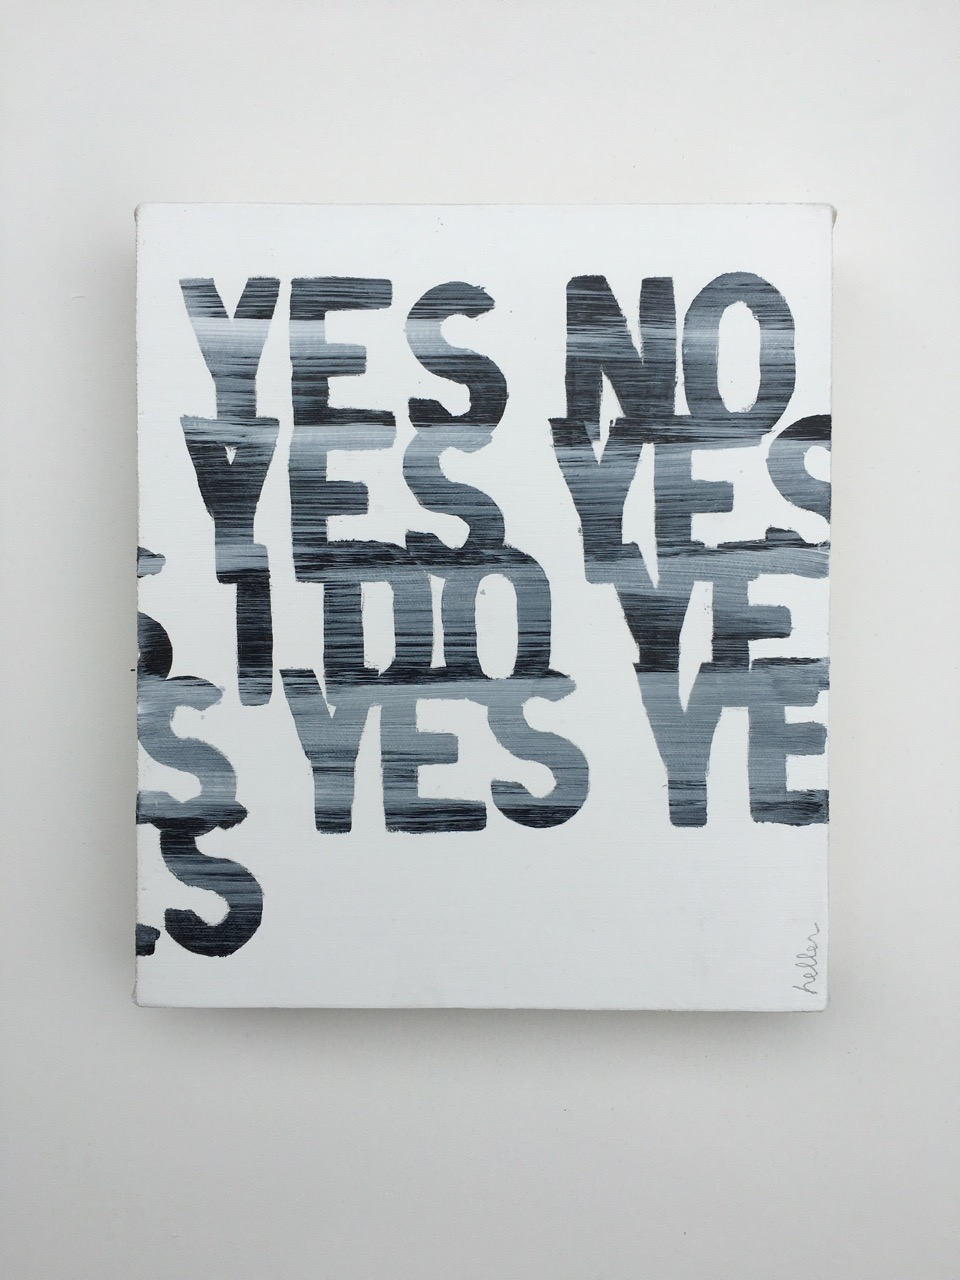 Matthew Heller,  Yes No Yes Yes I Do Yes Yes Yes,  2016, Acrylic on canvas, 11 x 9.5 inches